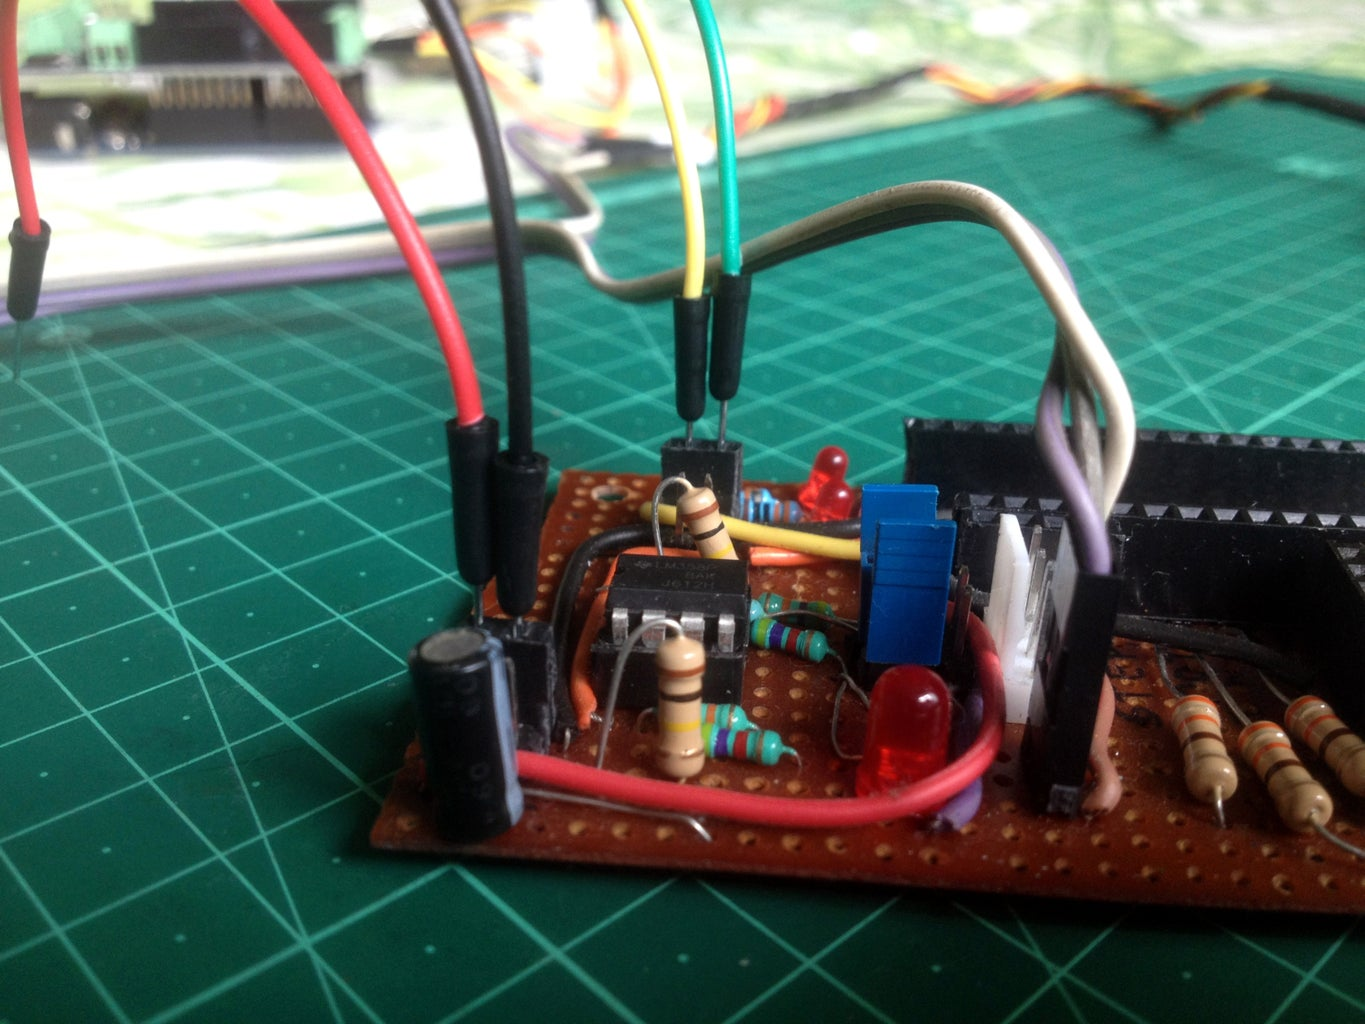 Connect the Amplifier Board to the Arduino Board